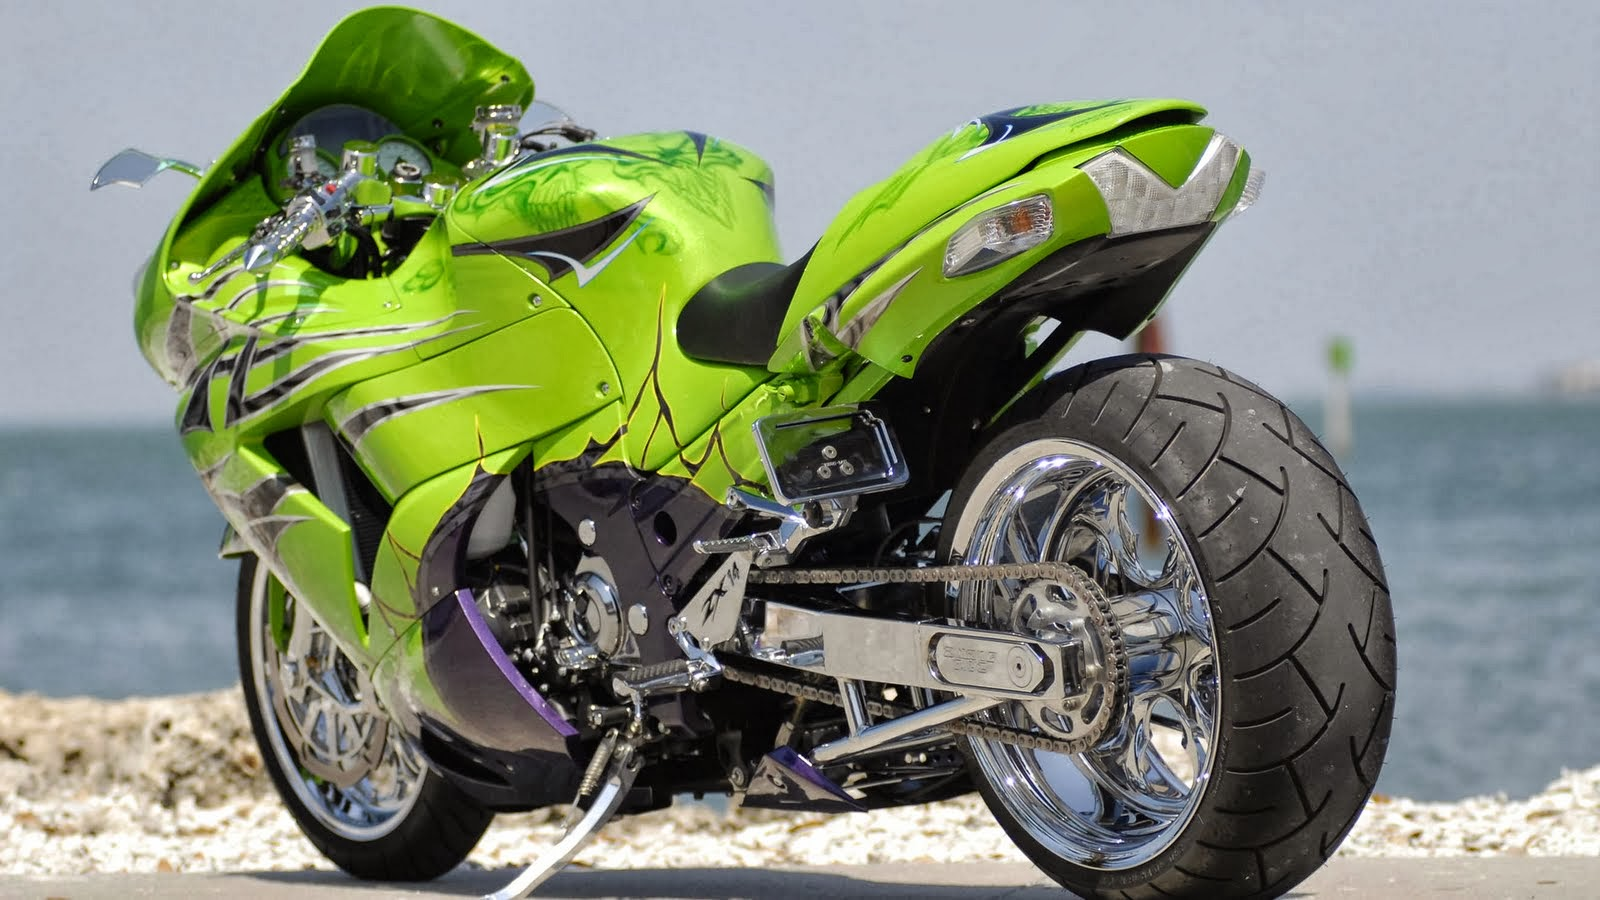 HD Wallpapers Desktop: Heavy Bike 2 HD Wallpapers